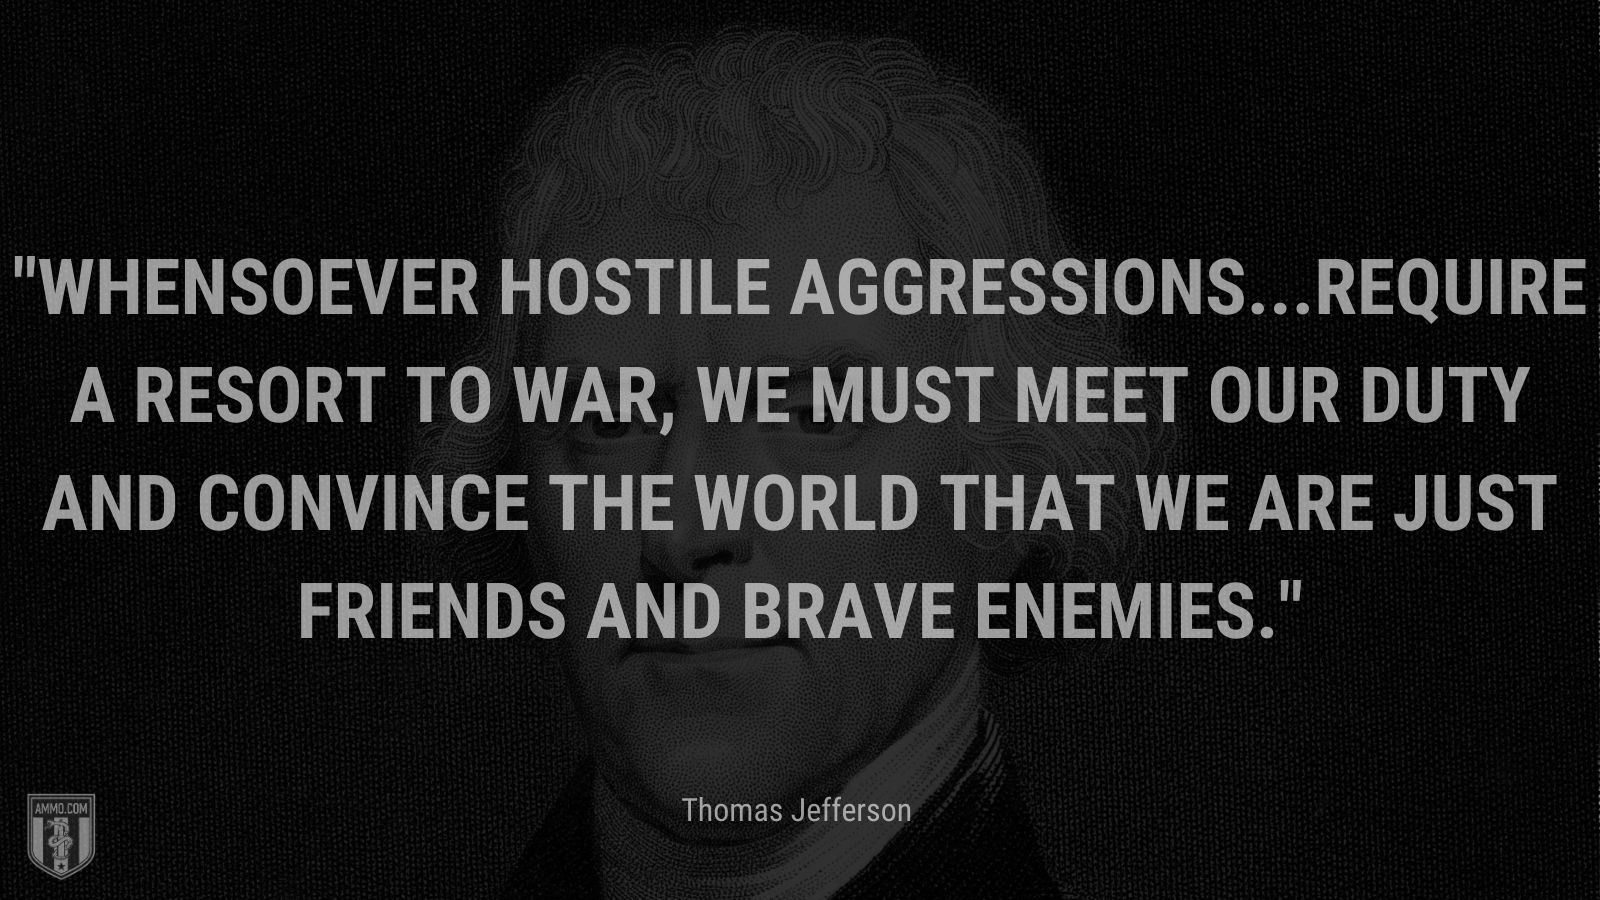 """""""Whensoever hostile aggressions...require a resort to war, we must meet our duty and convince the world that we are just friends and brave enemies."""" - Thomas Jefferson"""